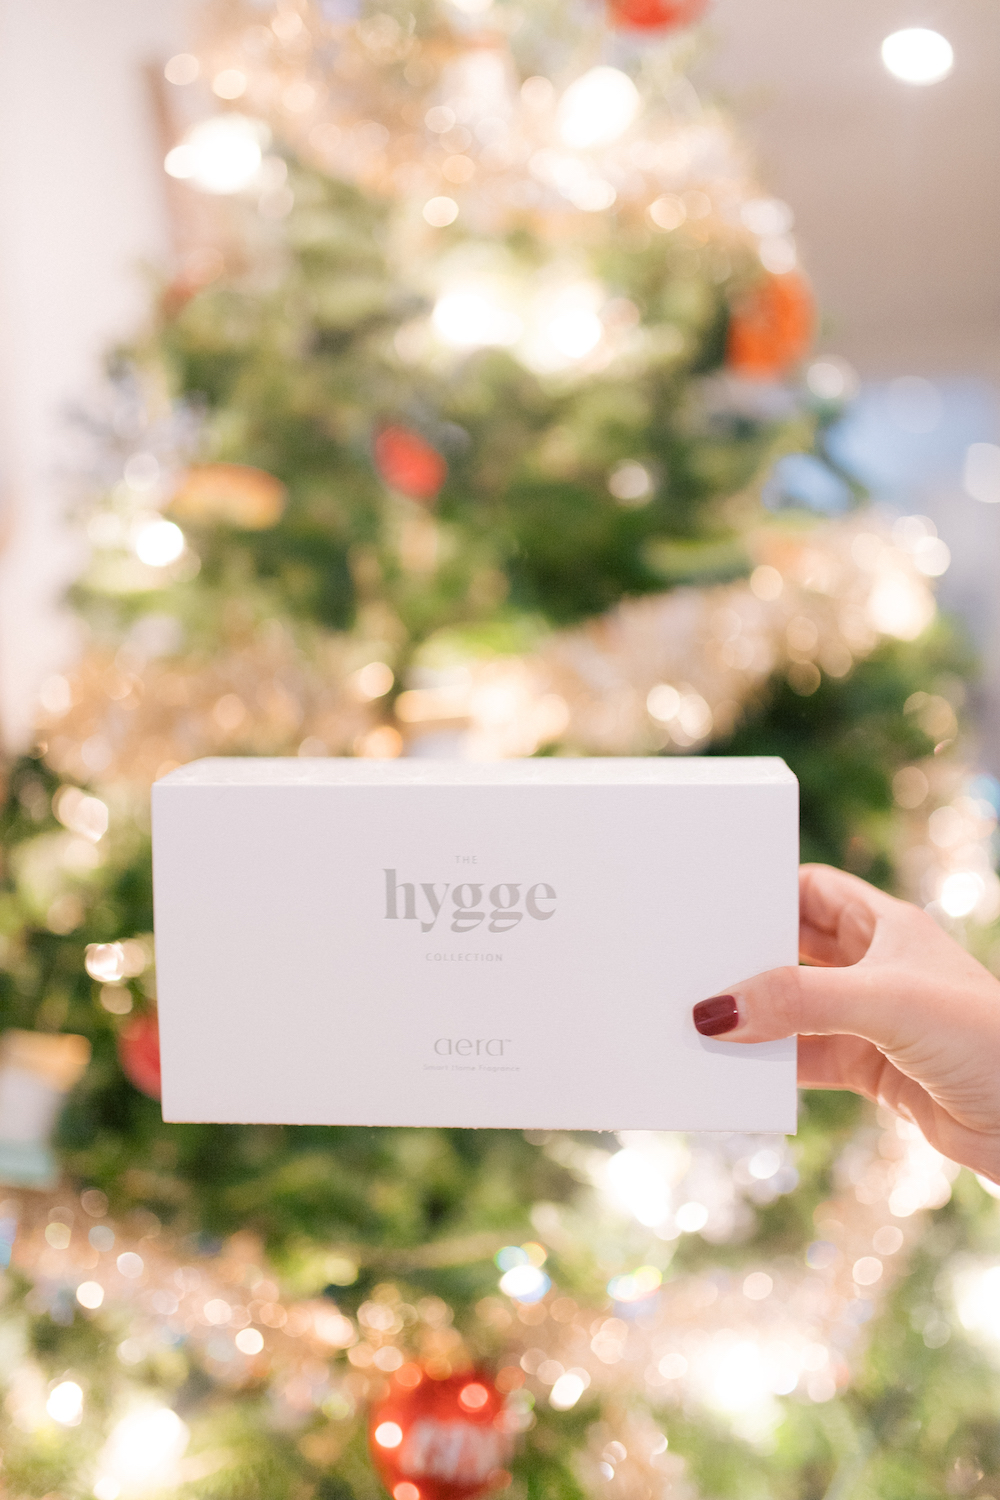 The Hygge Collection - Area